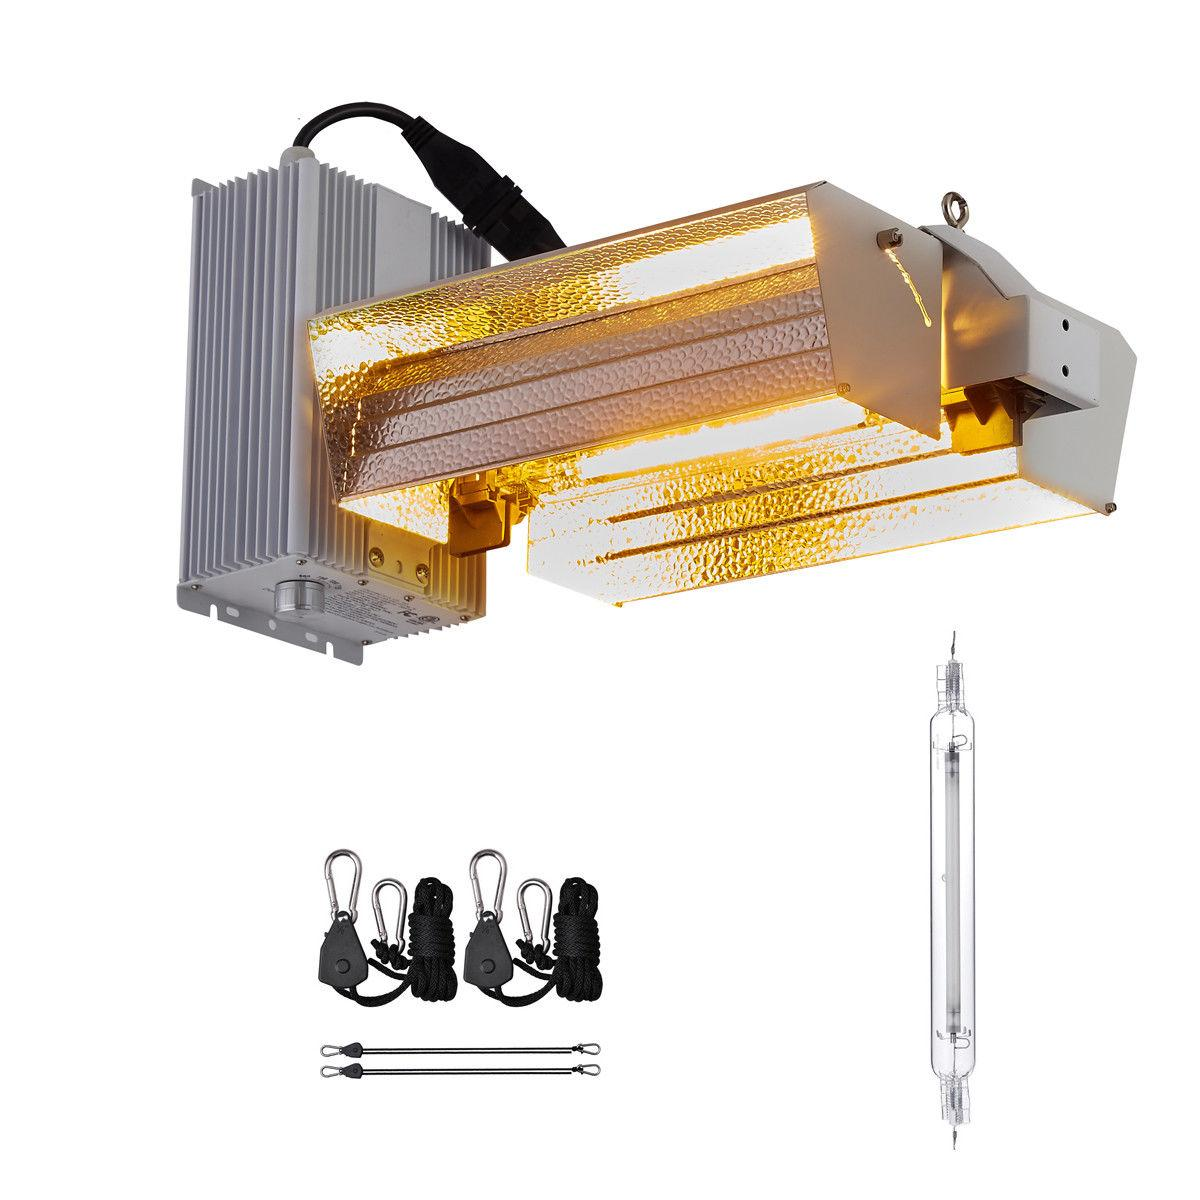 Hydroponic 1000W Double Ended HPS Light Fixture Grow